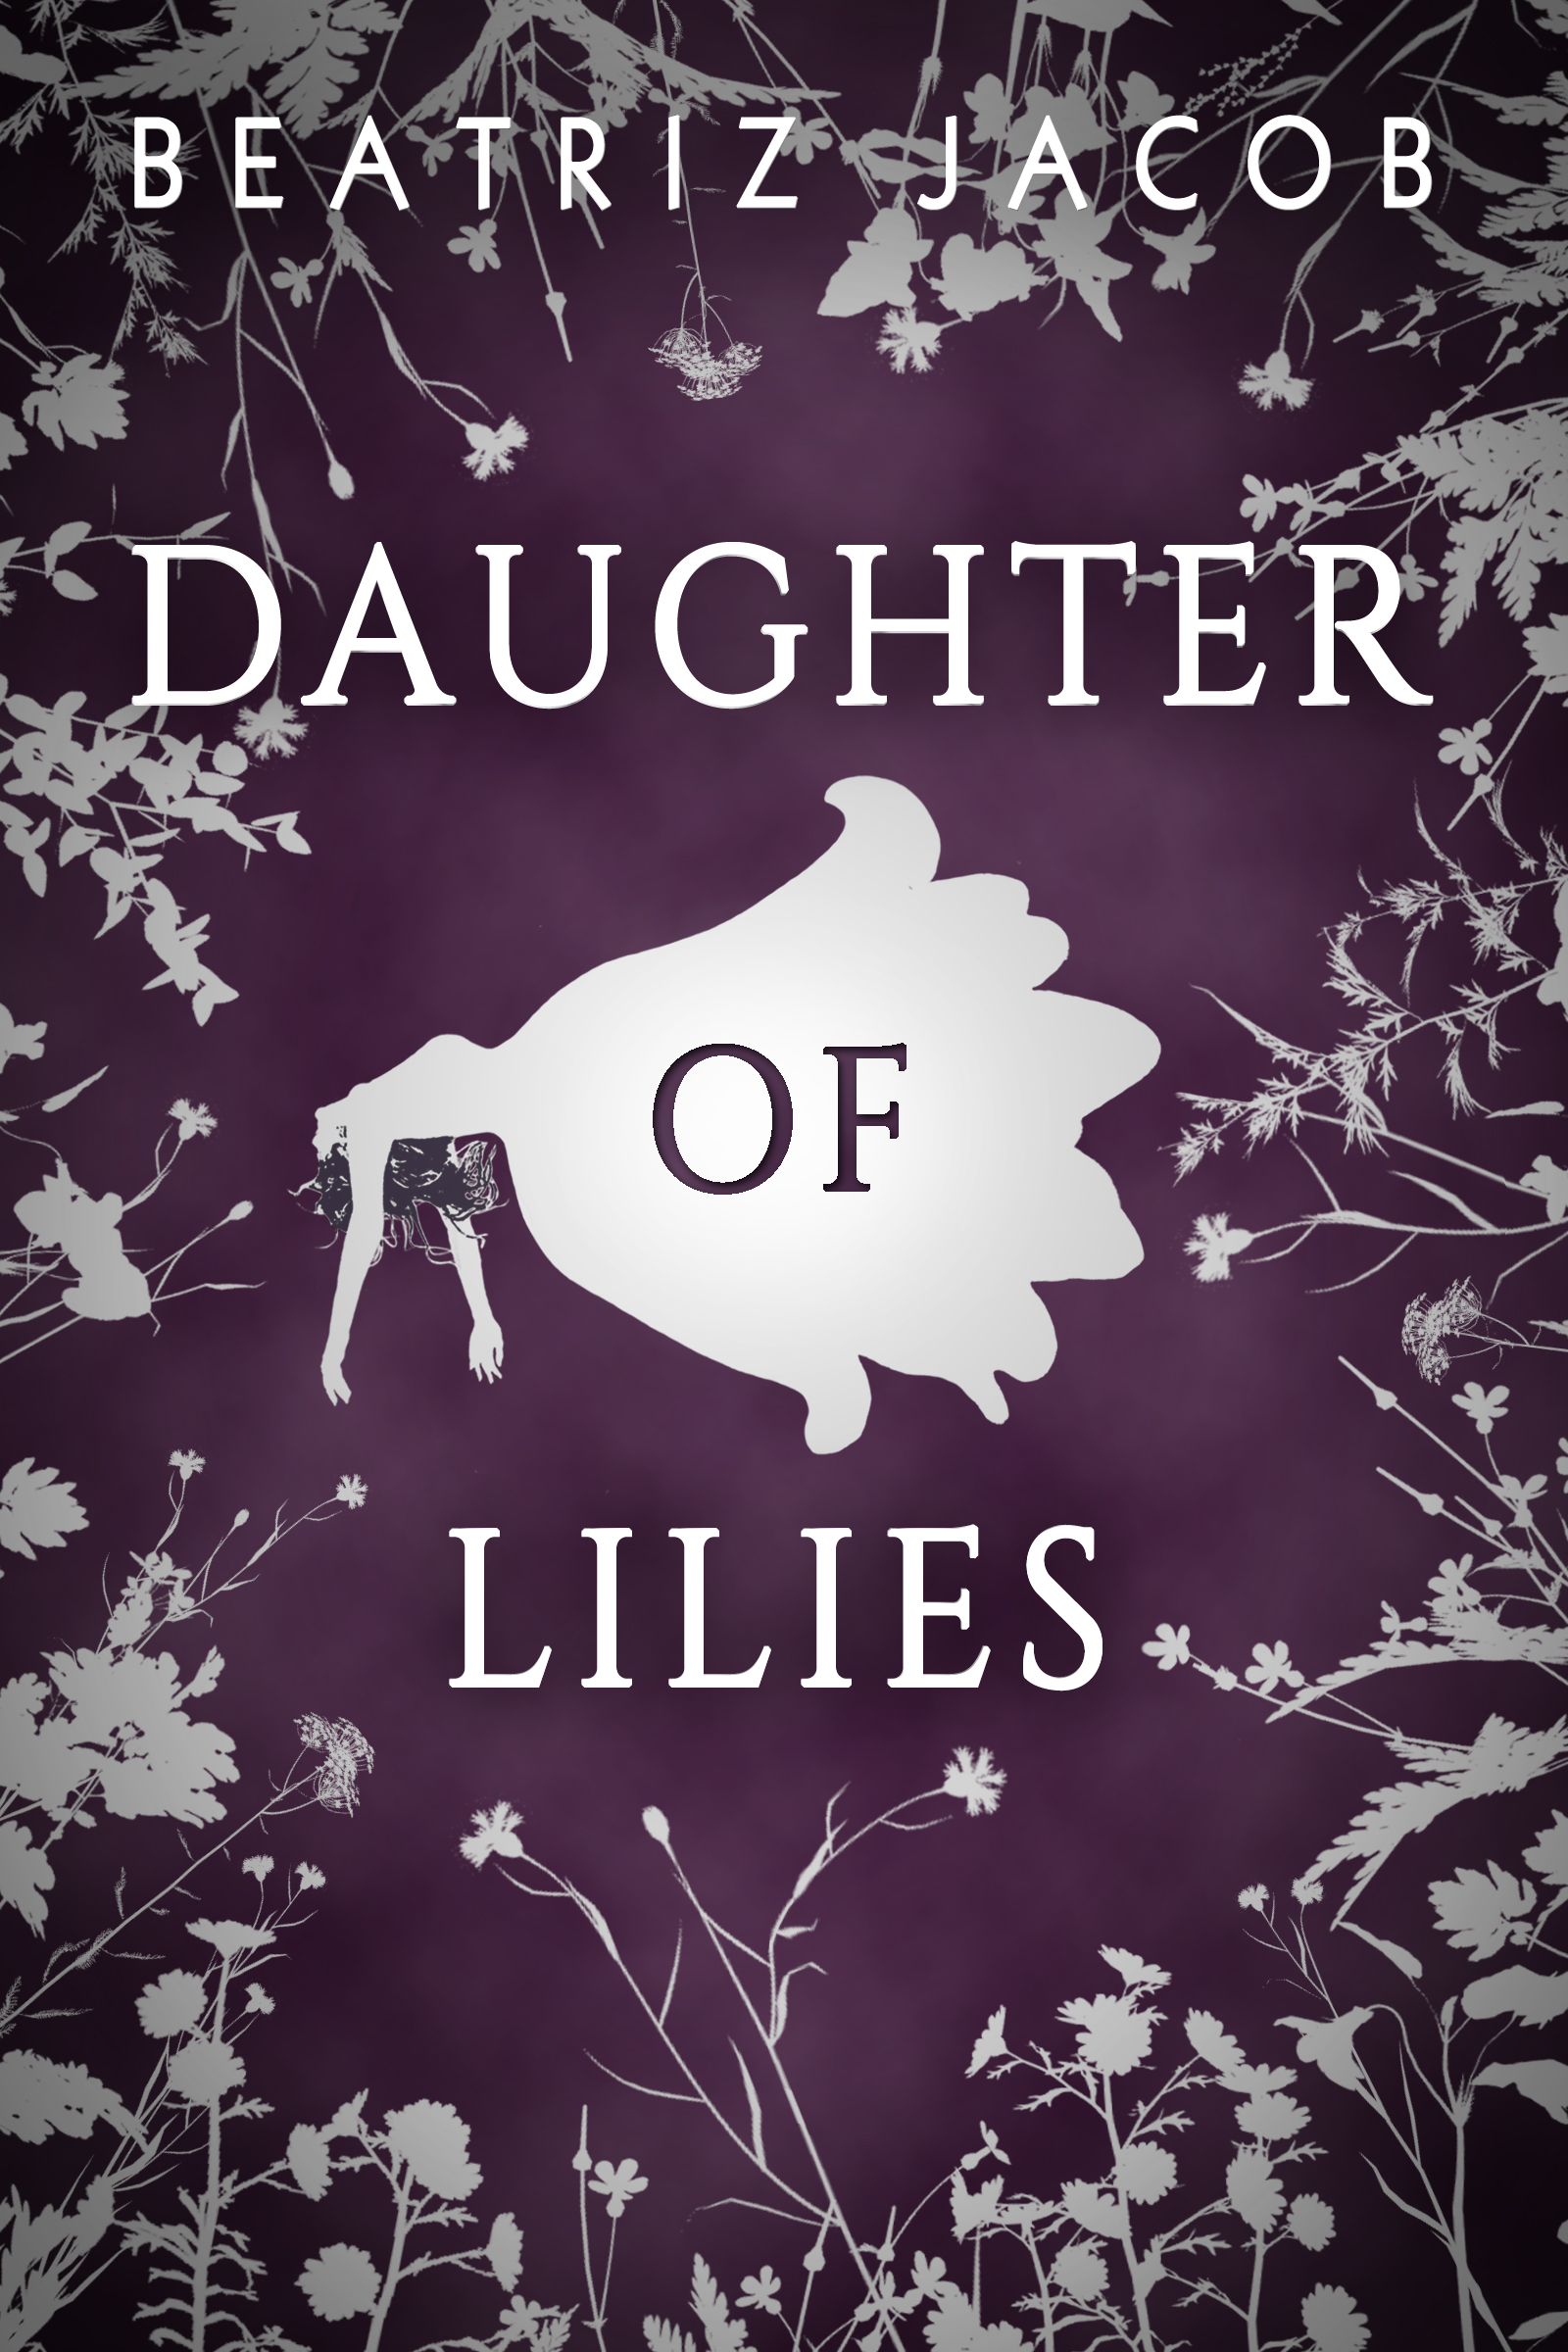 Daughter of lilies